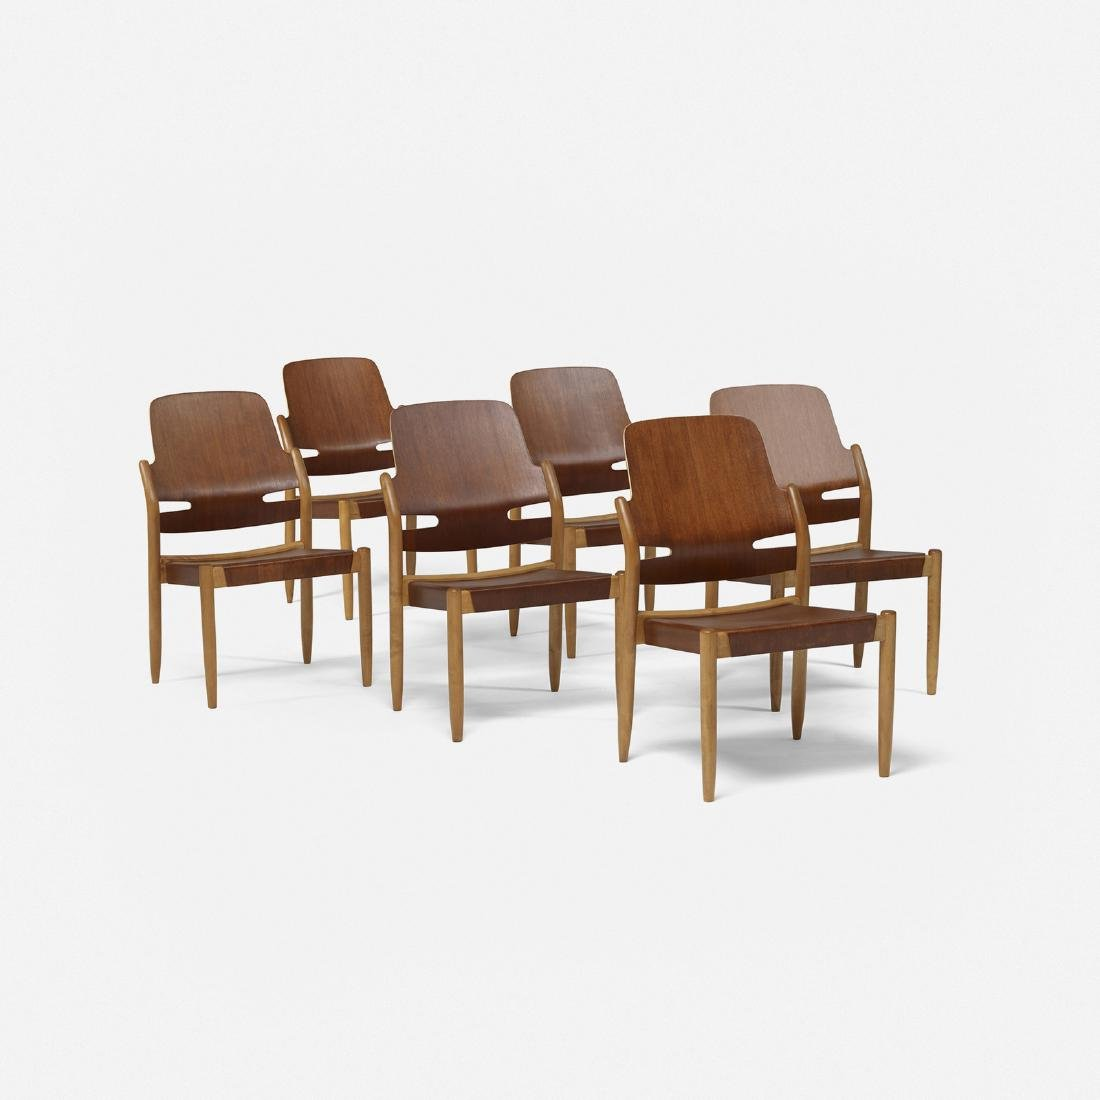 Carl-Axel Acking, dining chairs, set of six